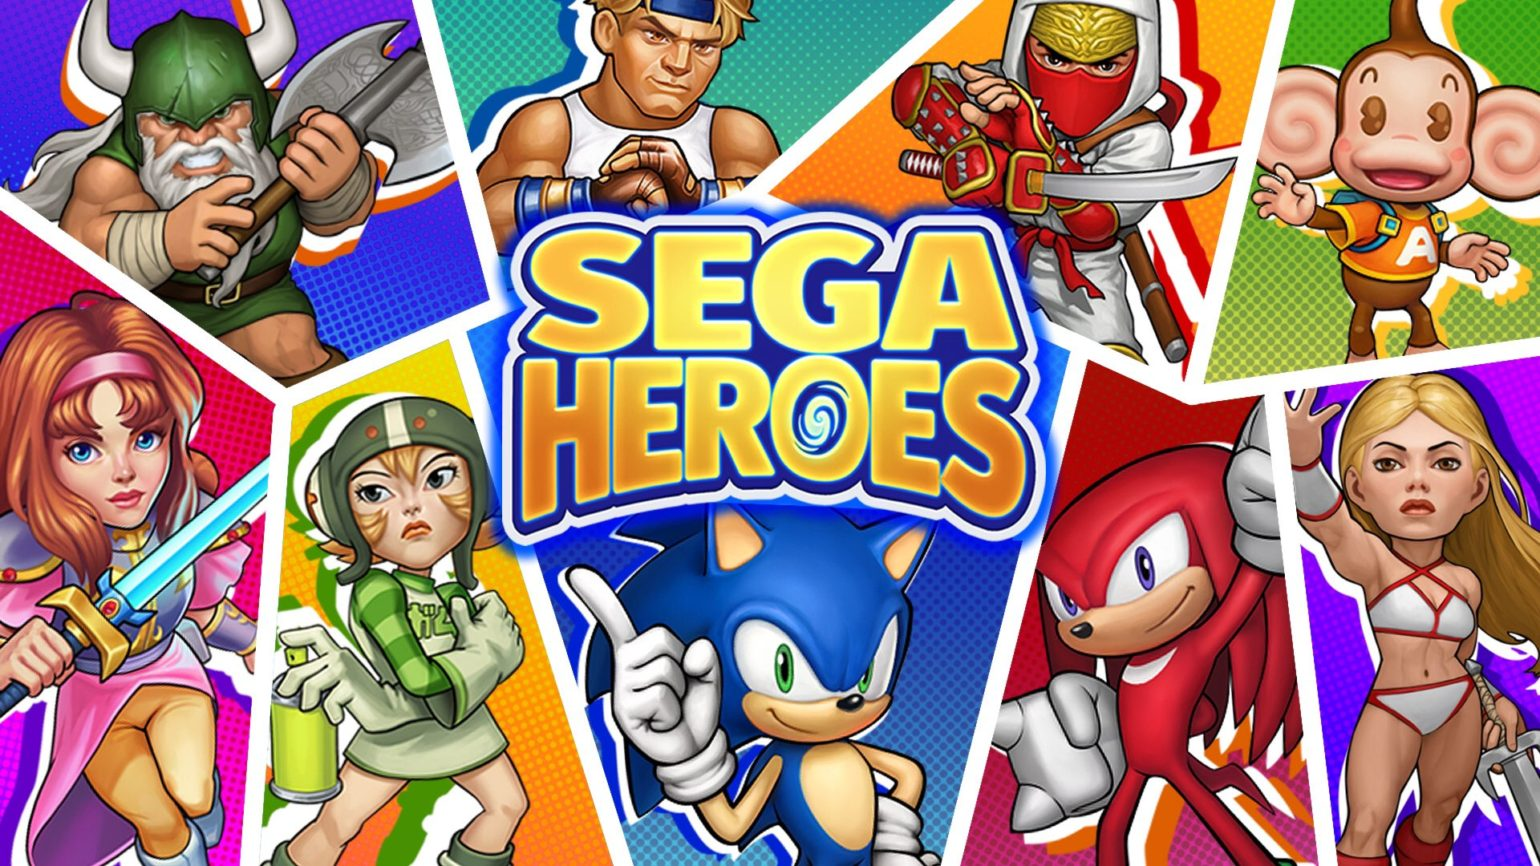 SEGA Heroes logo personnages